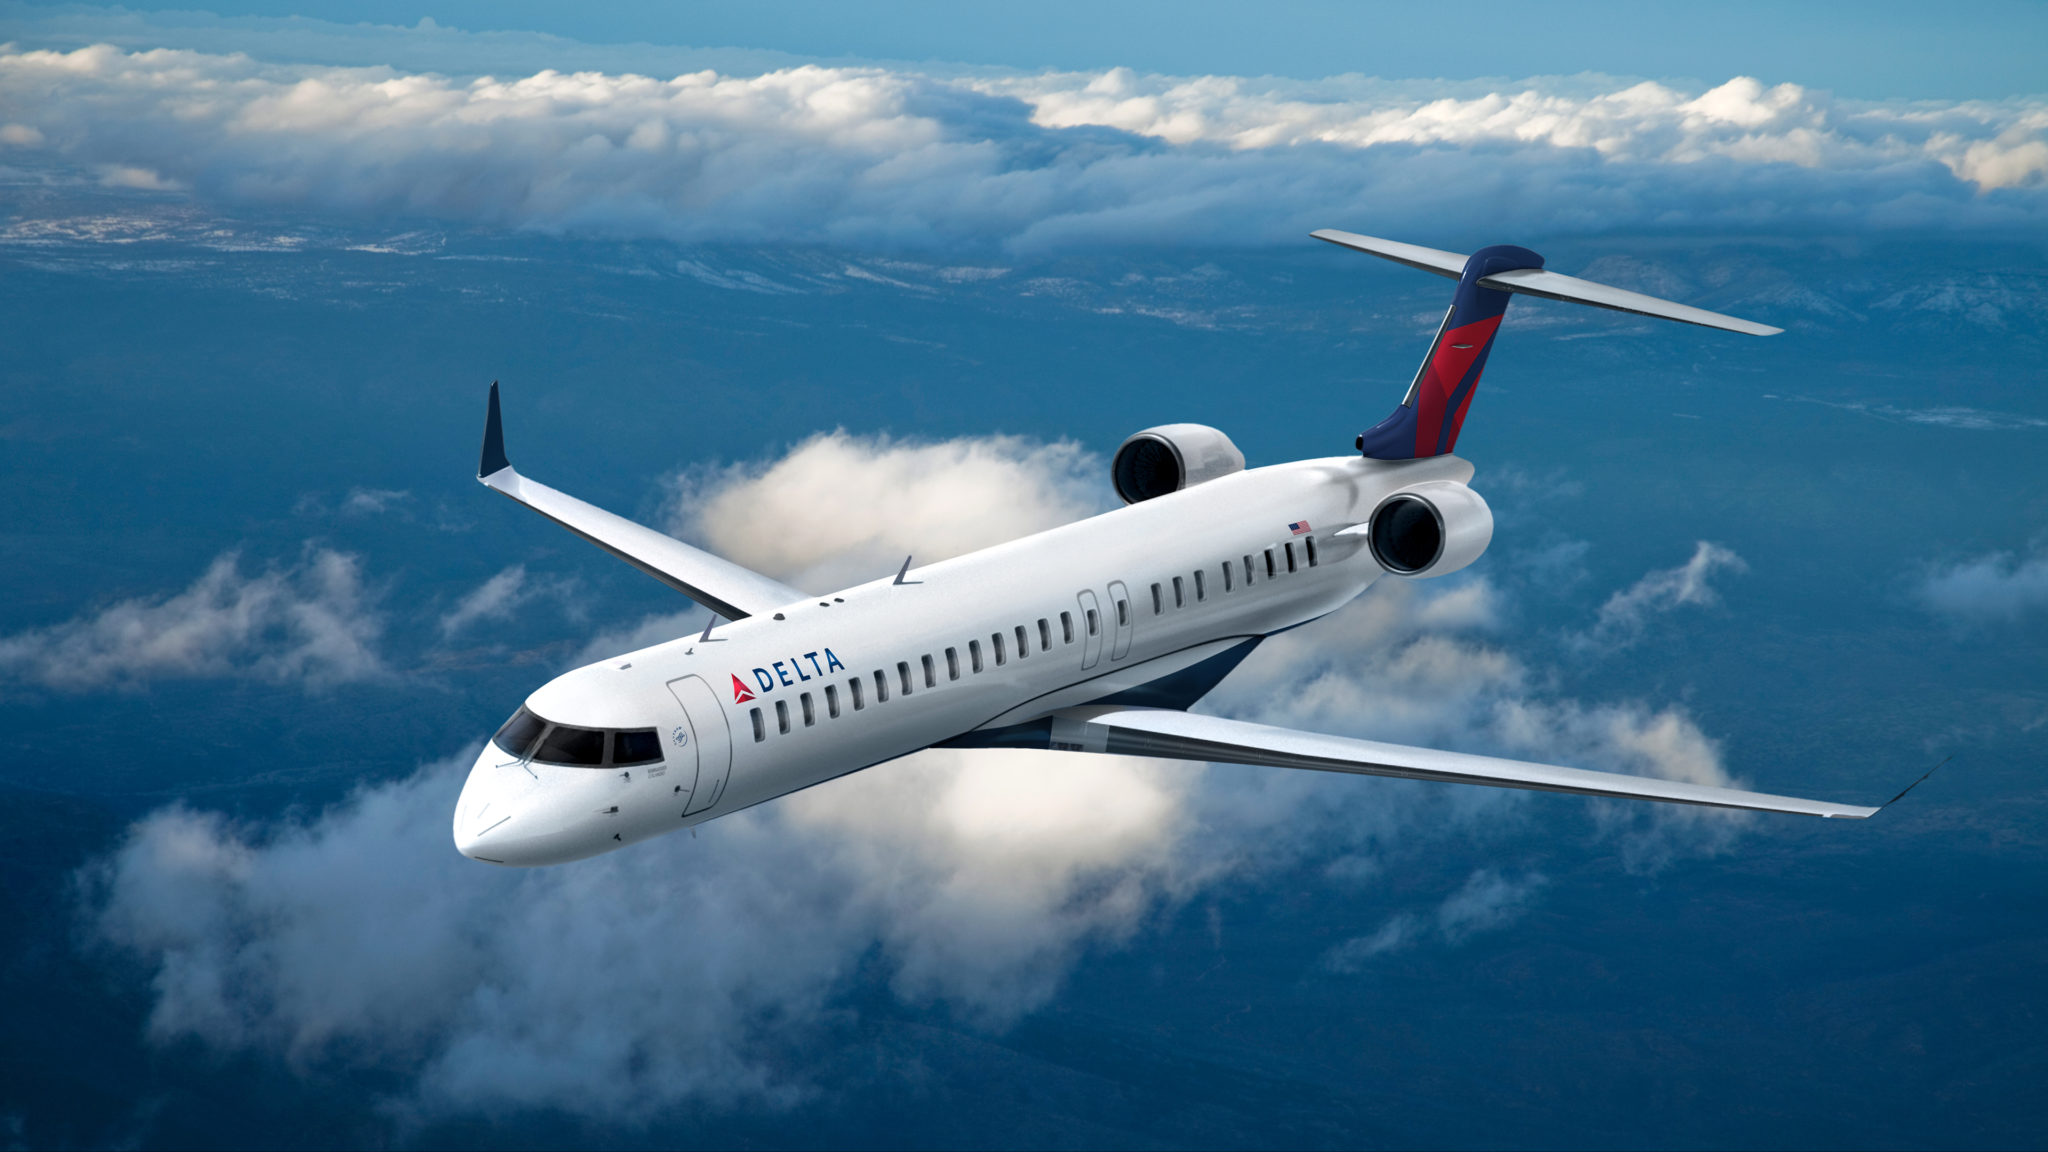 Delta Bombardier Quickly Push The Boundaries Of Regional Paxex